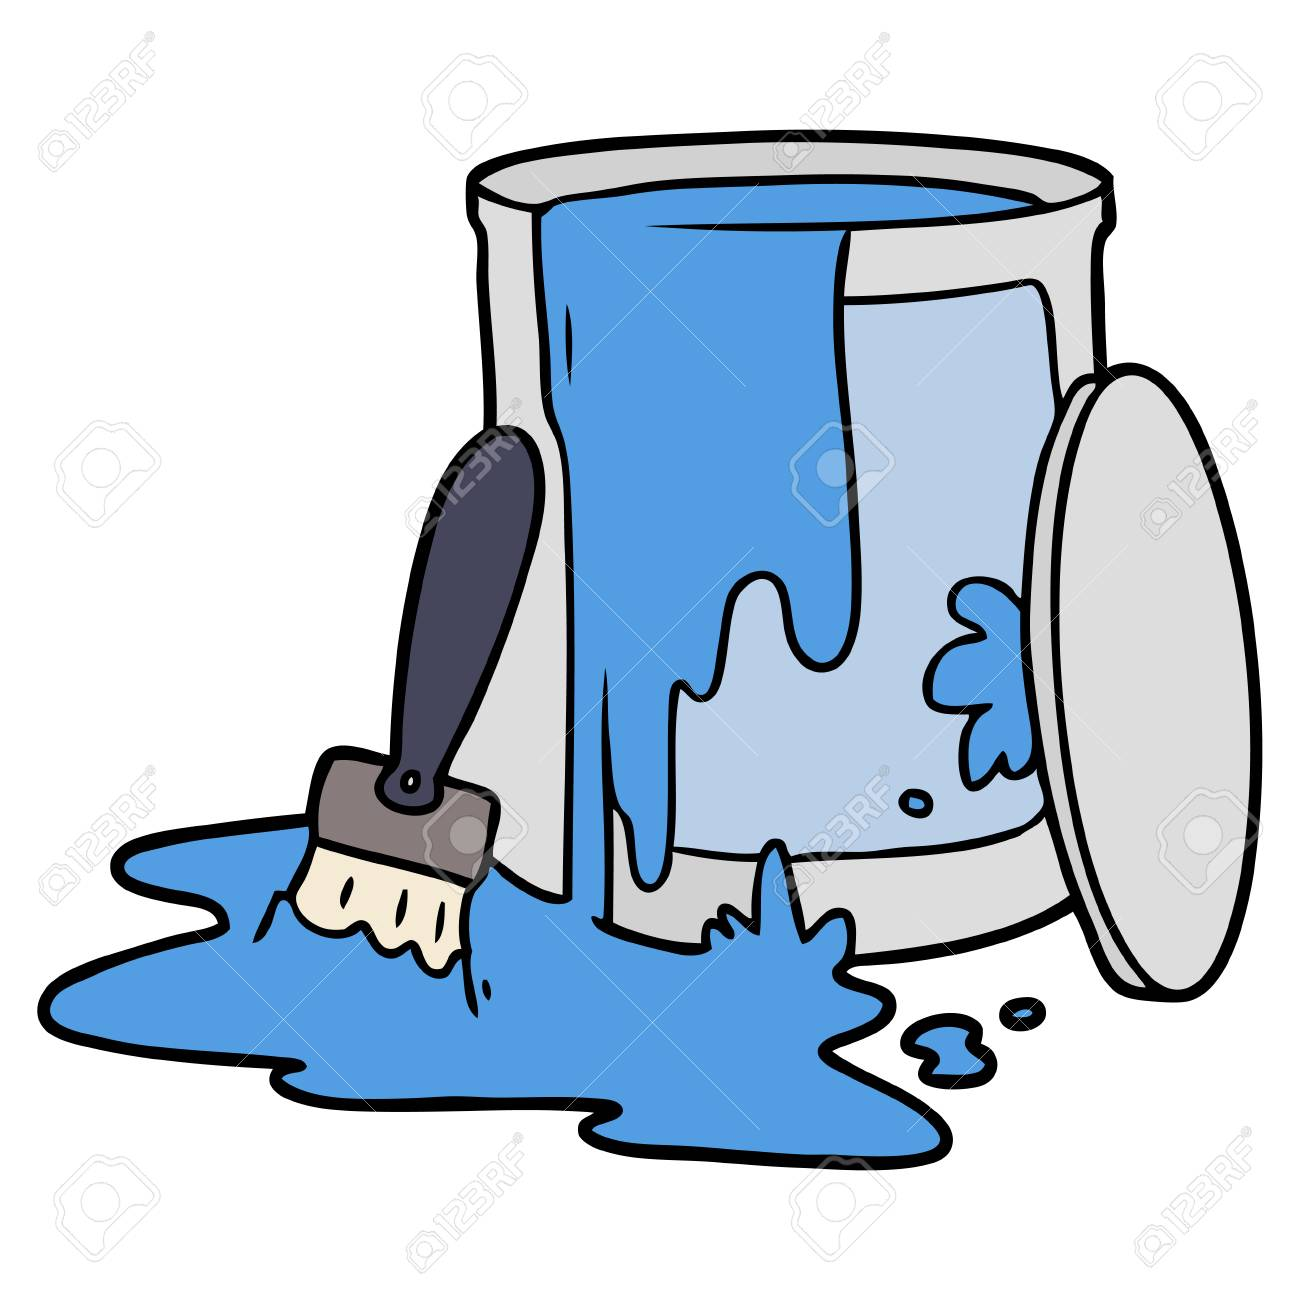 Cartoon Paint Bucket Illustration On White Background Royalty Free Cliparts Vectors And Stock Illustration Image 95800110